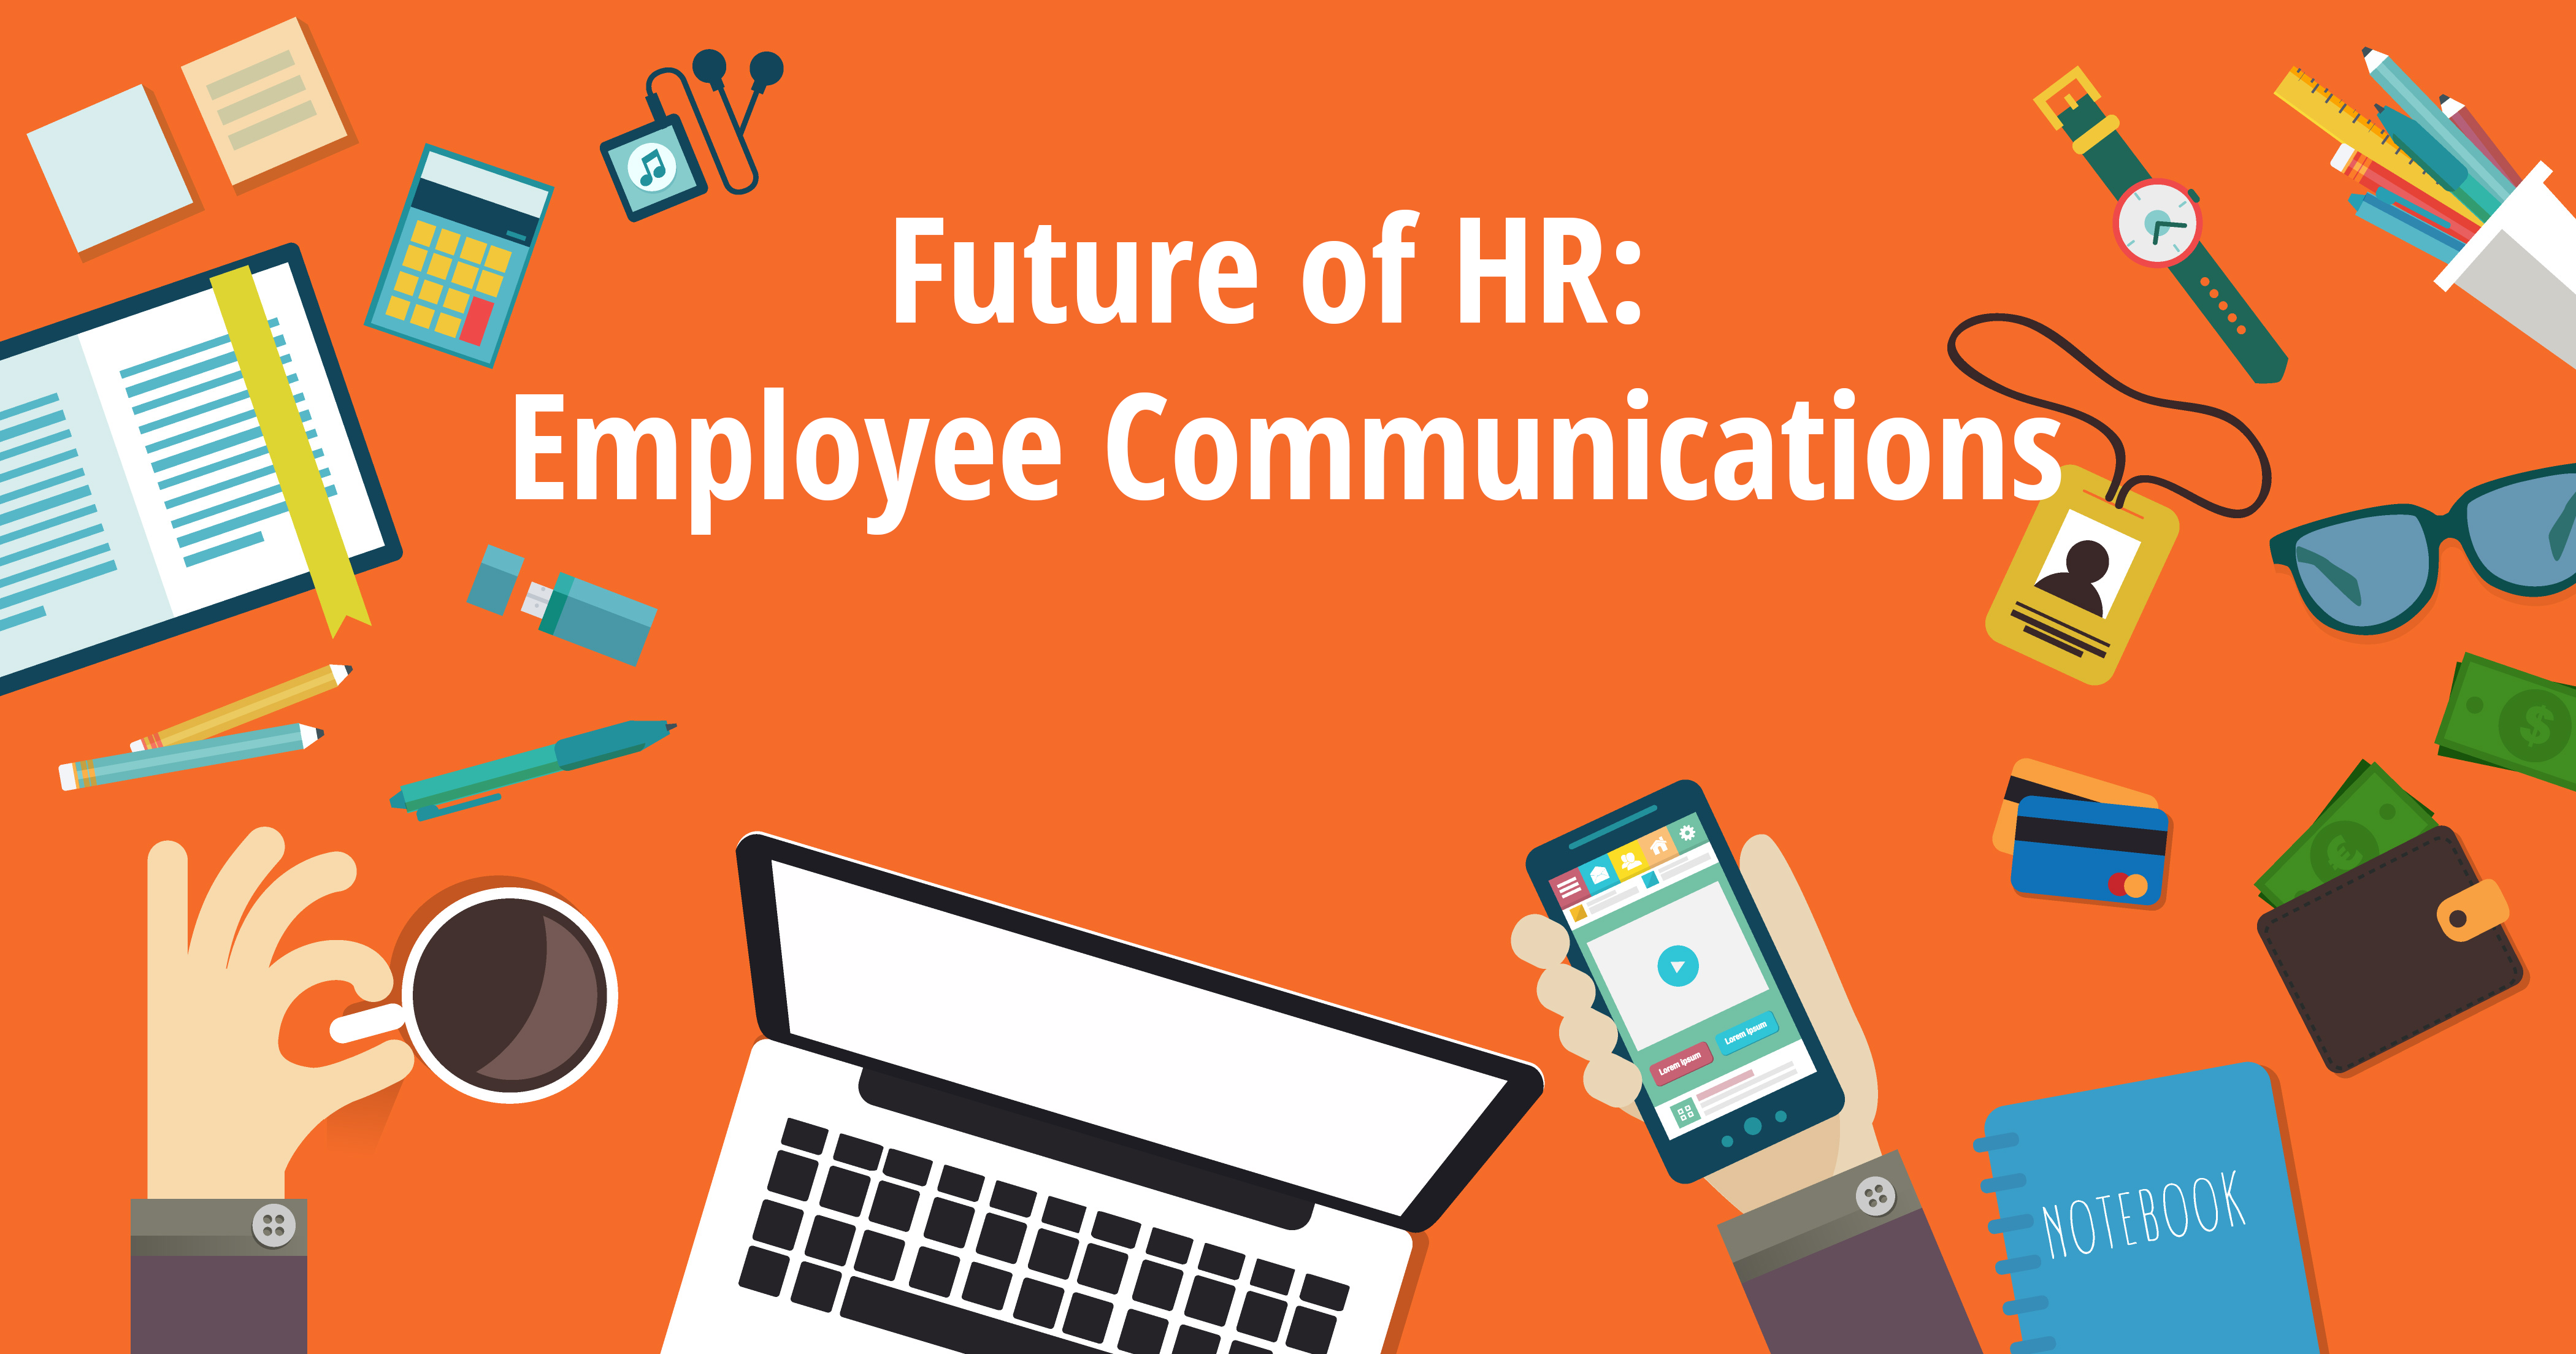 Future of HR: Employee Communications